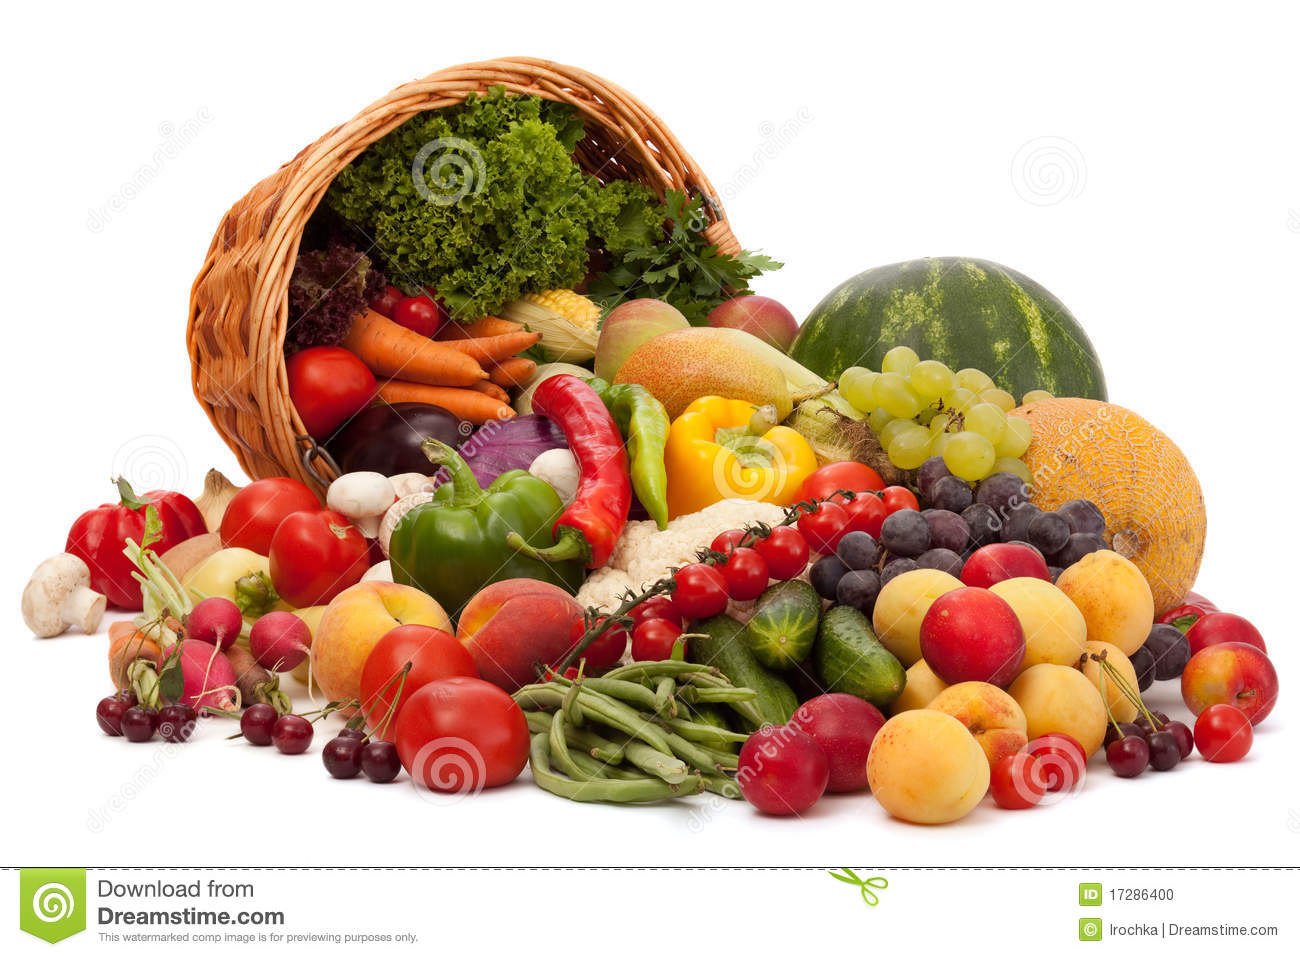 Fruit and vegetable assortment